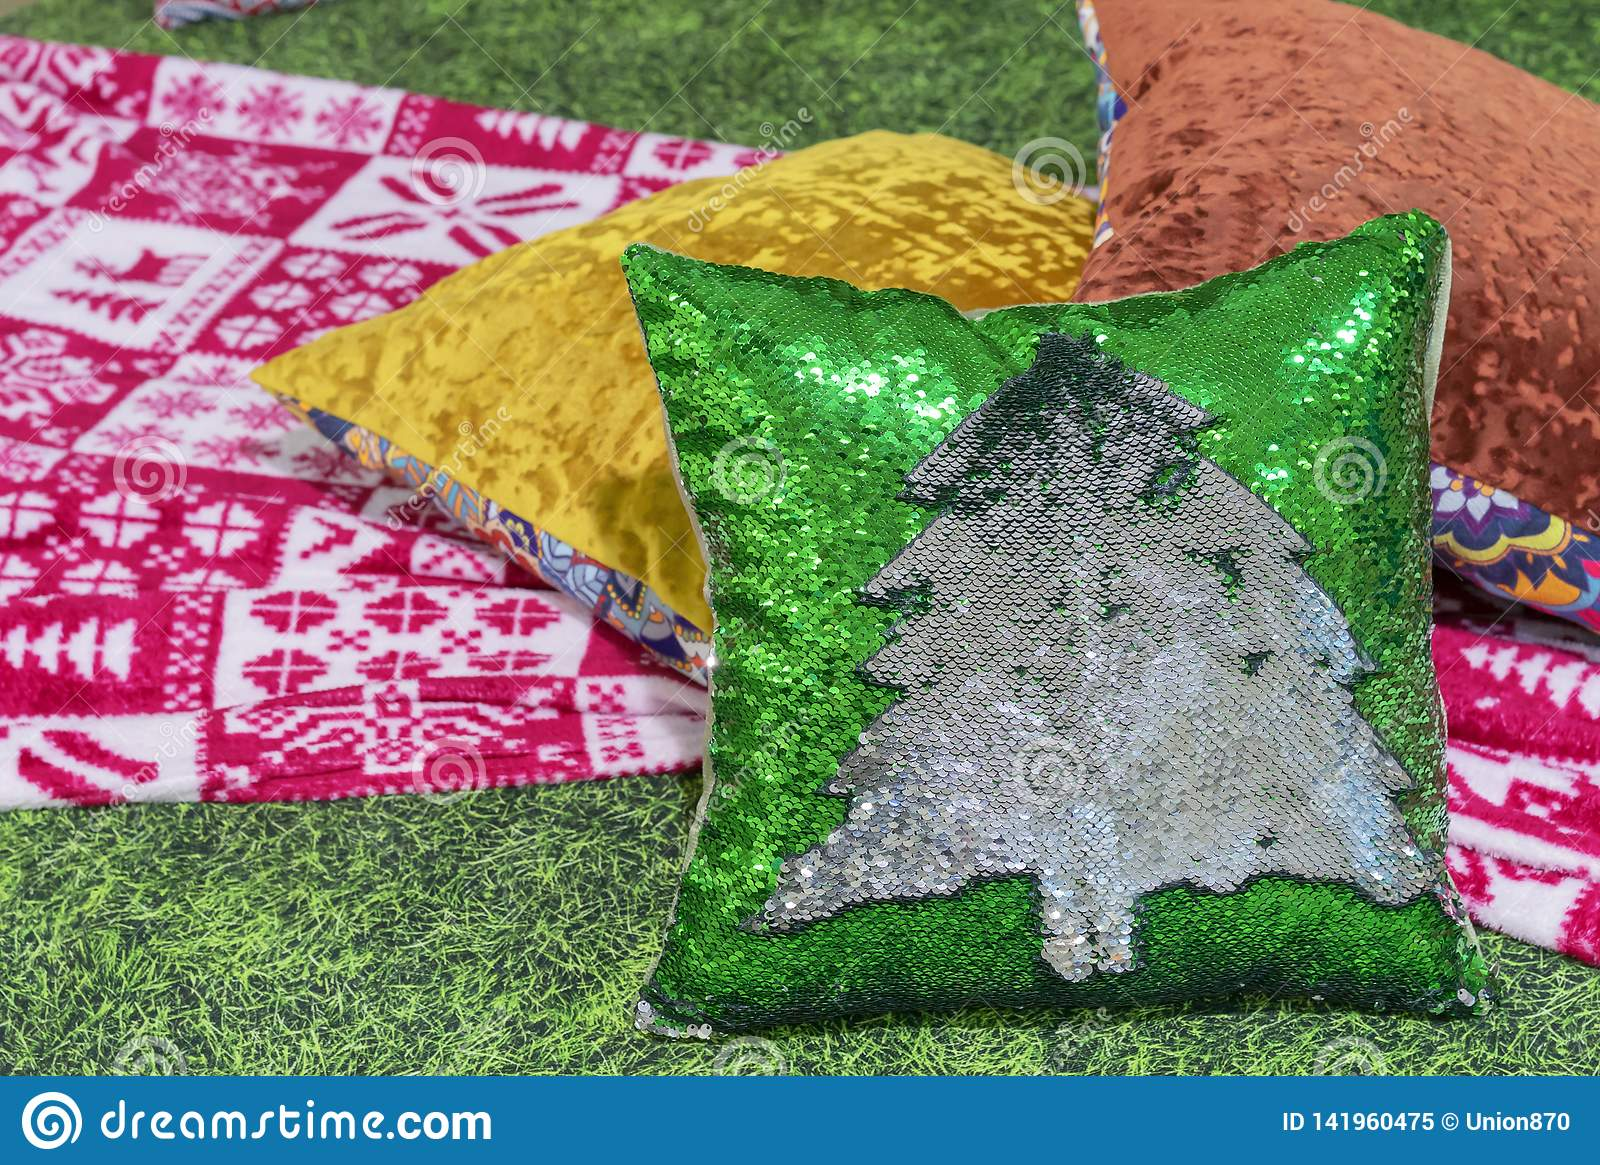 Decorative pillow with Christmas tree from sequins